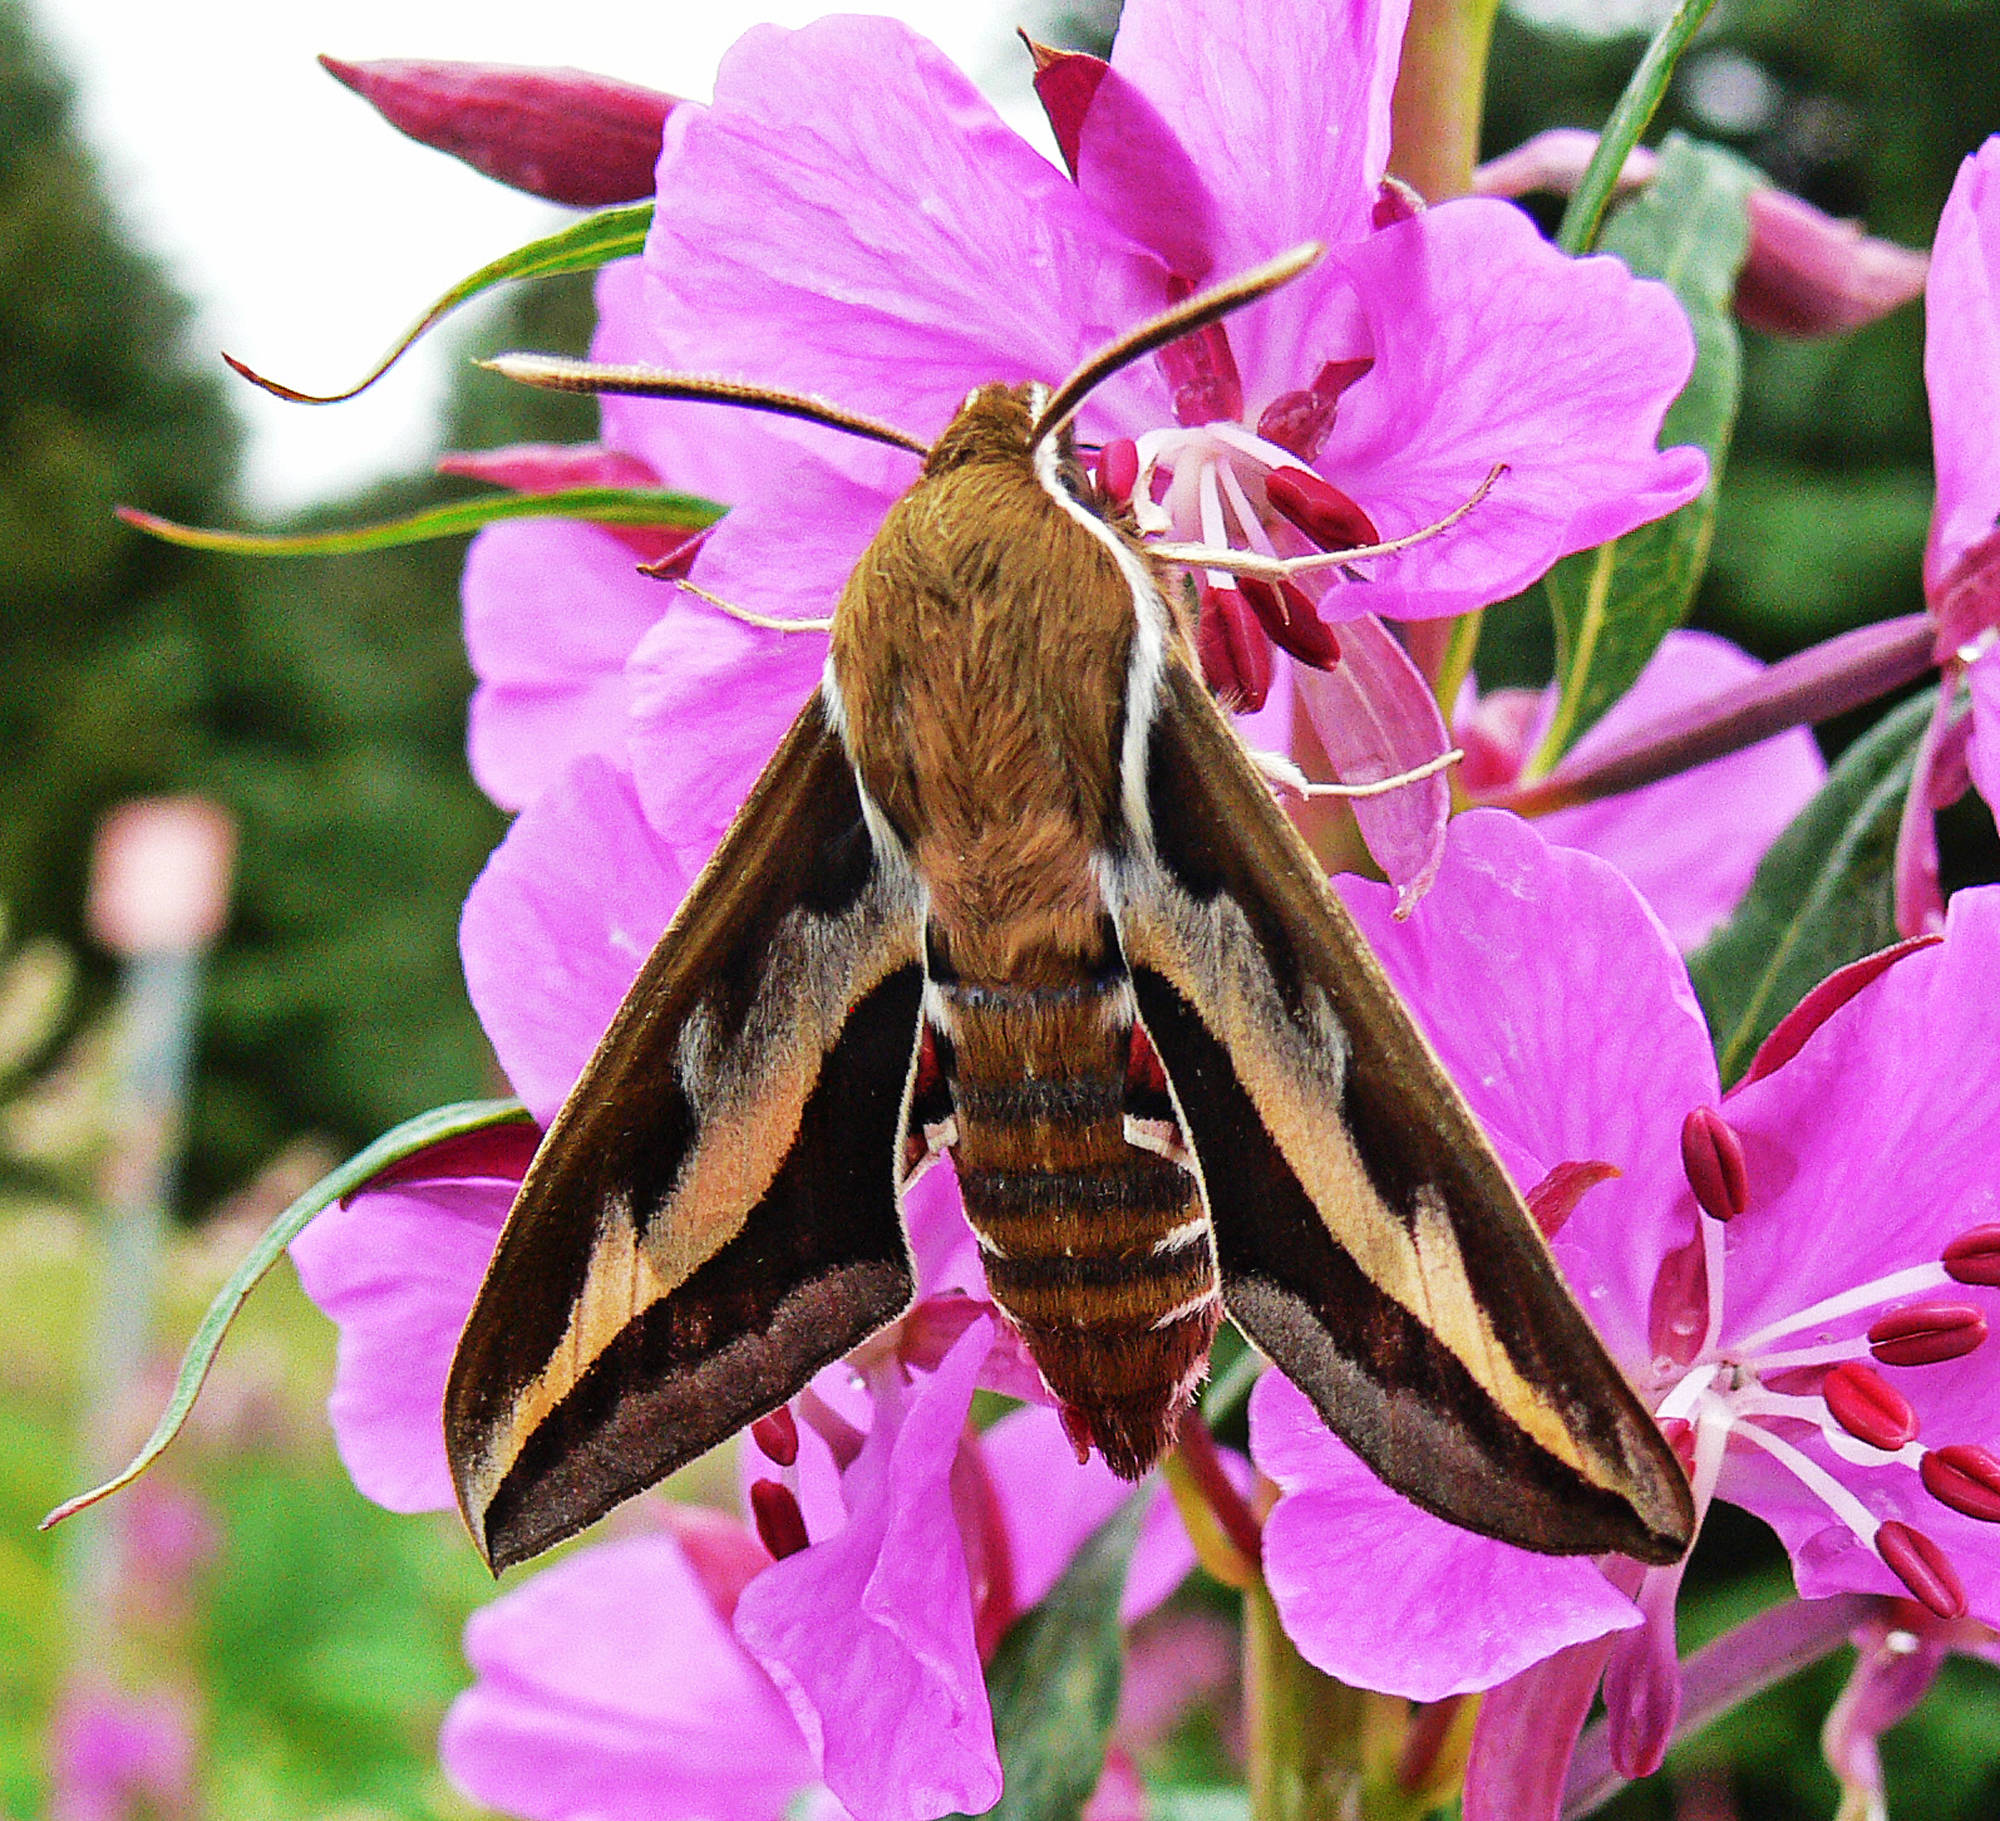 Many hawk moths have long proboscides suitable for extracting nectar from the long nectar spurs of certain flowers. (Courtesy photo | Bob Armstrong)